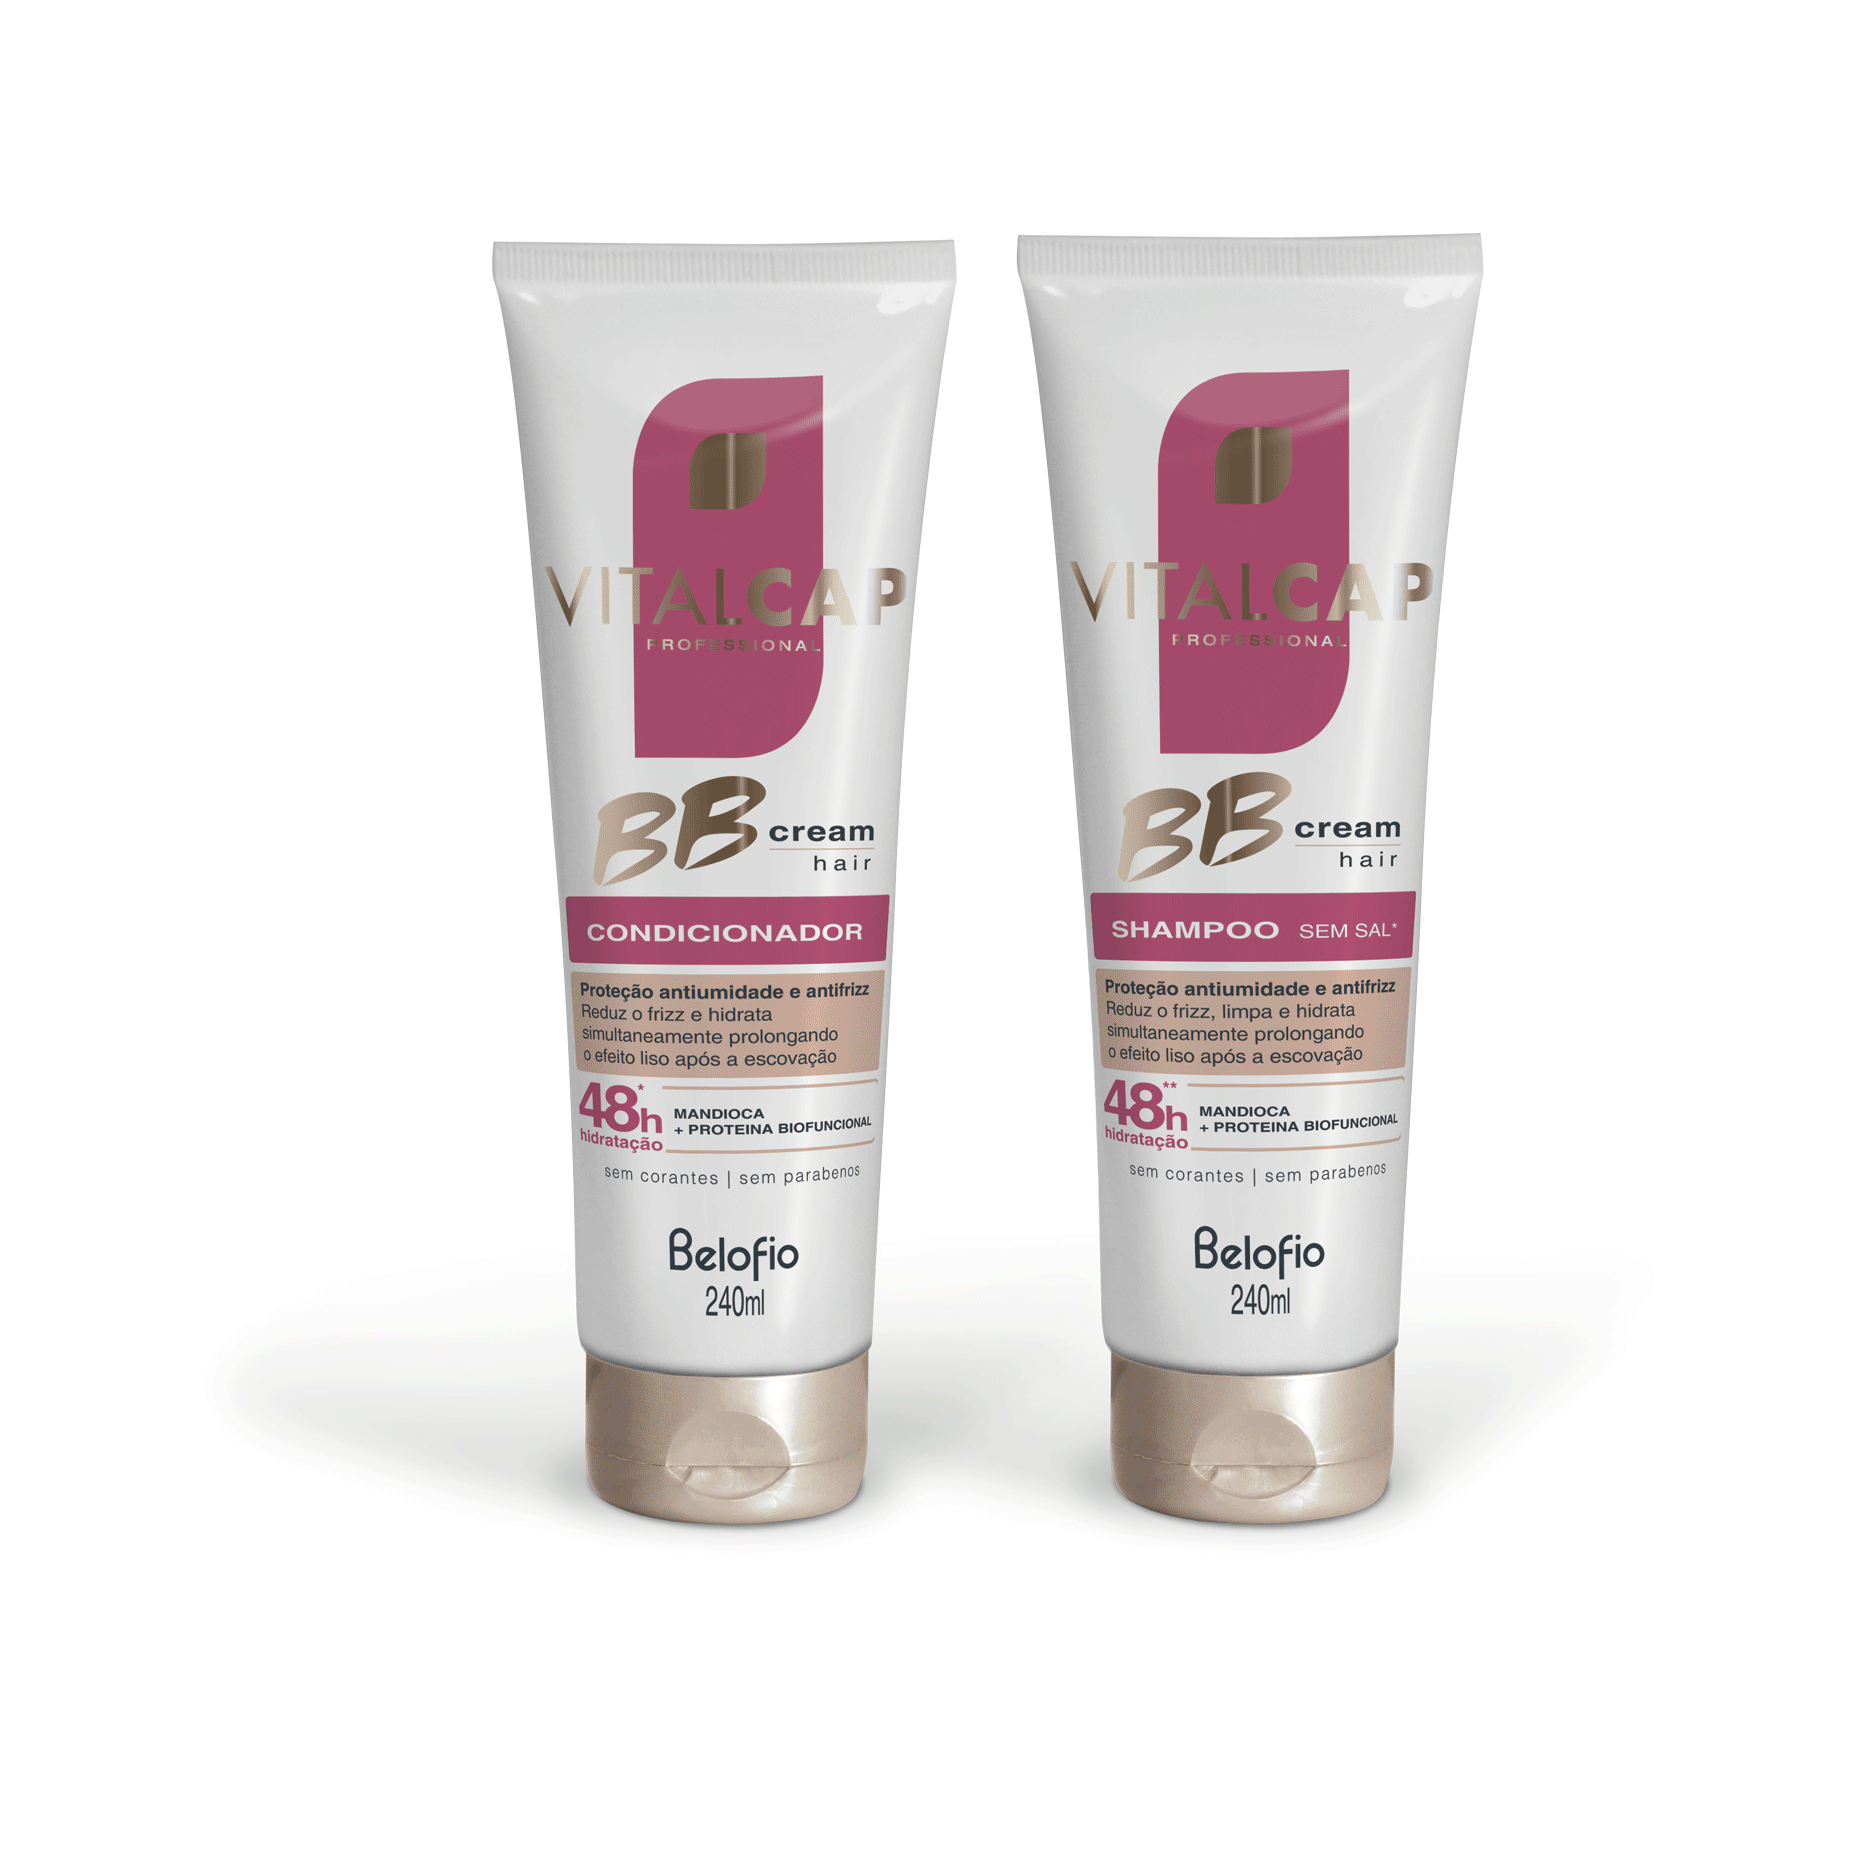 Kit BB Cream Shampoo e Condicionador VITALCAP